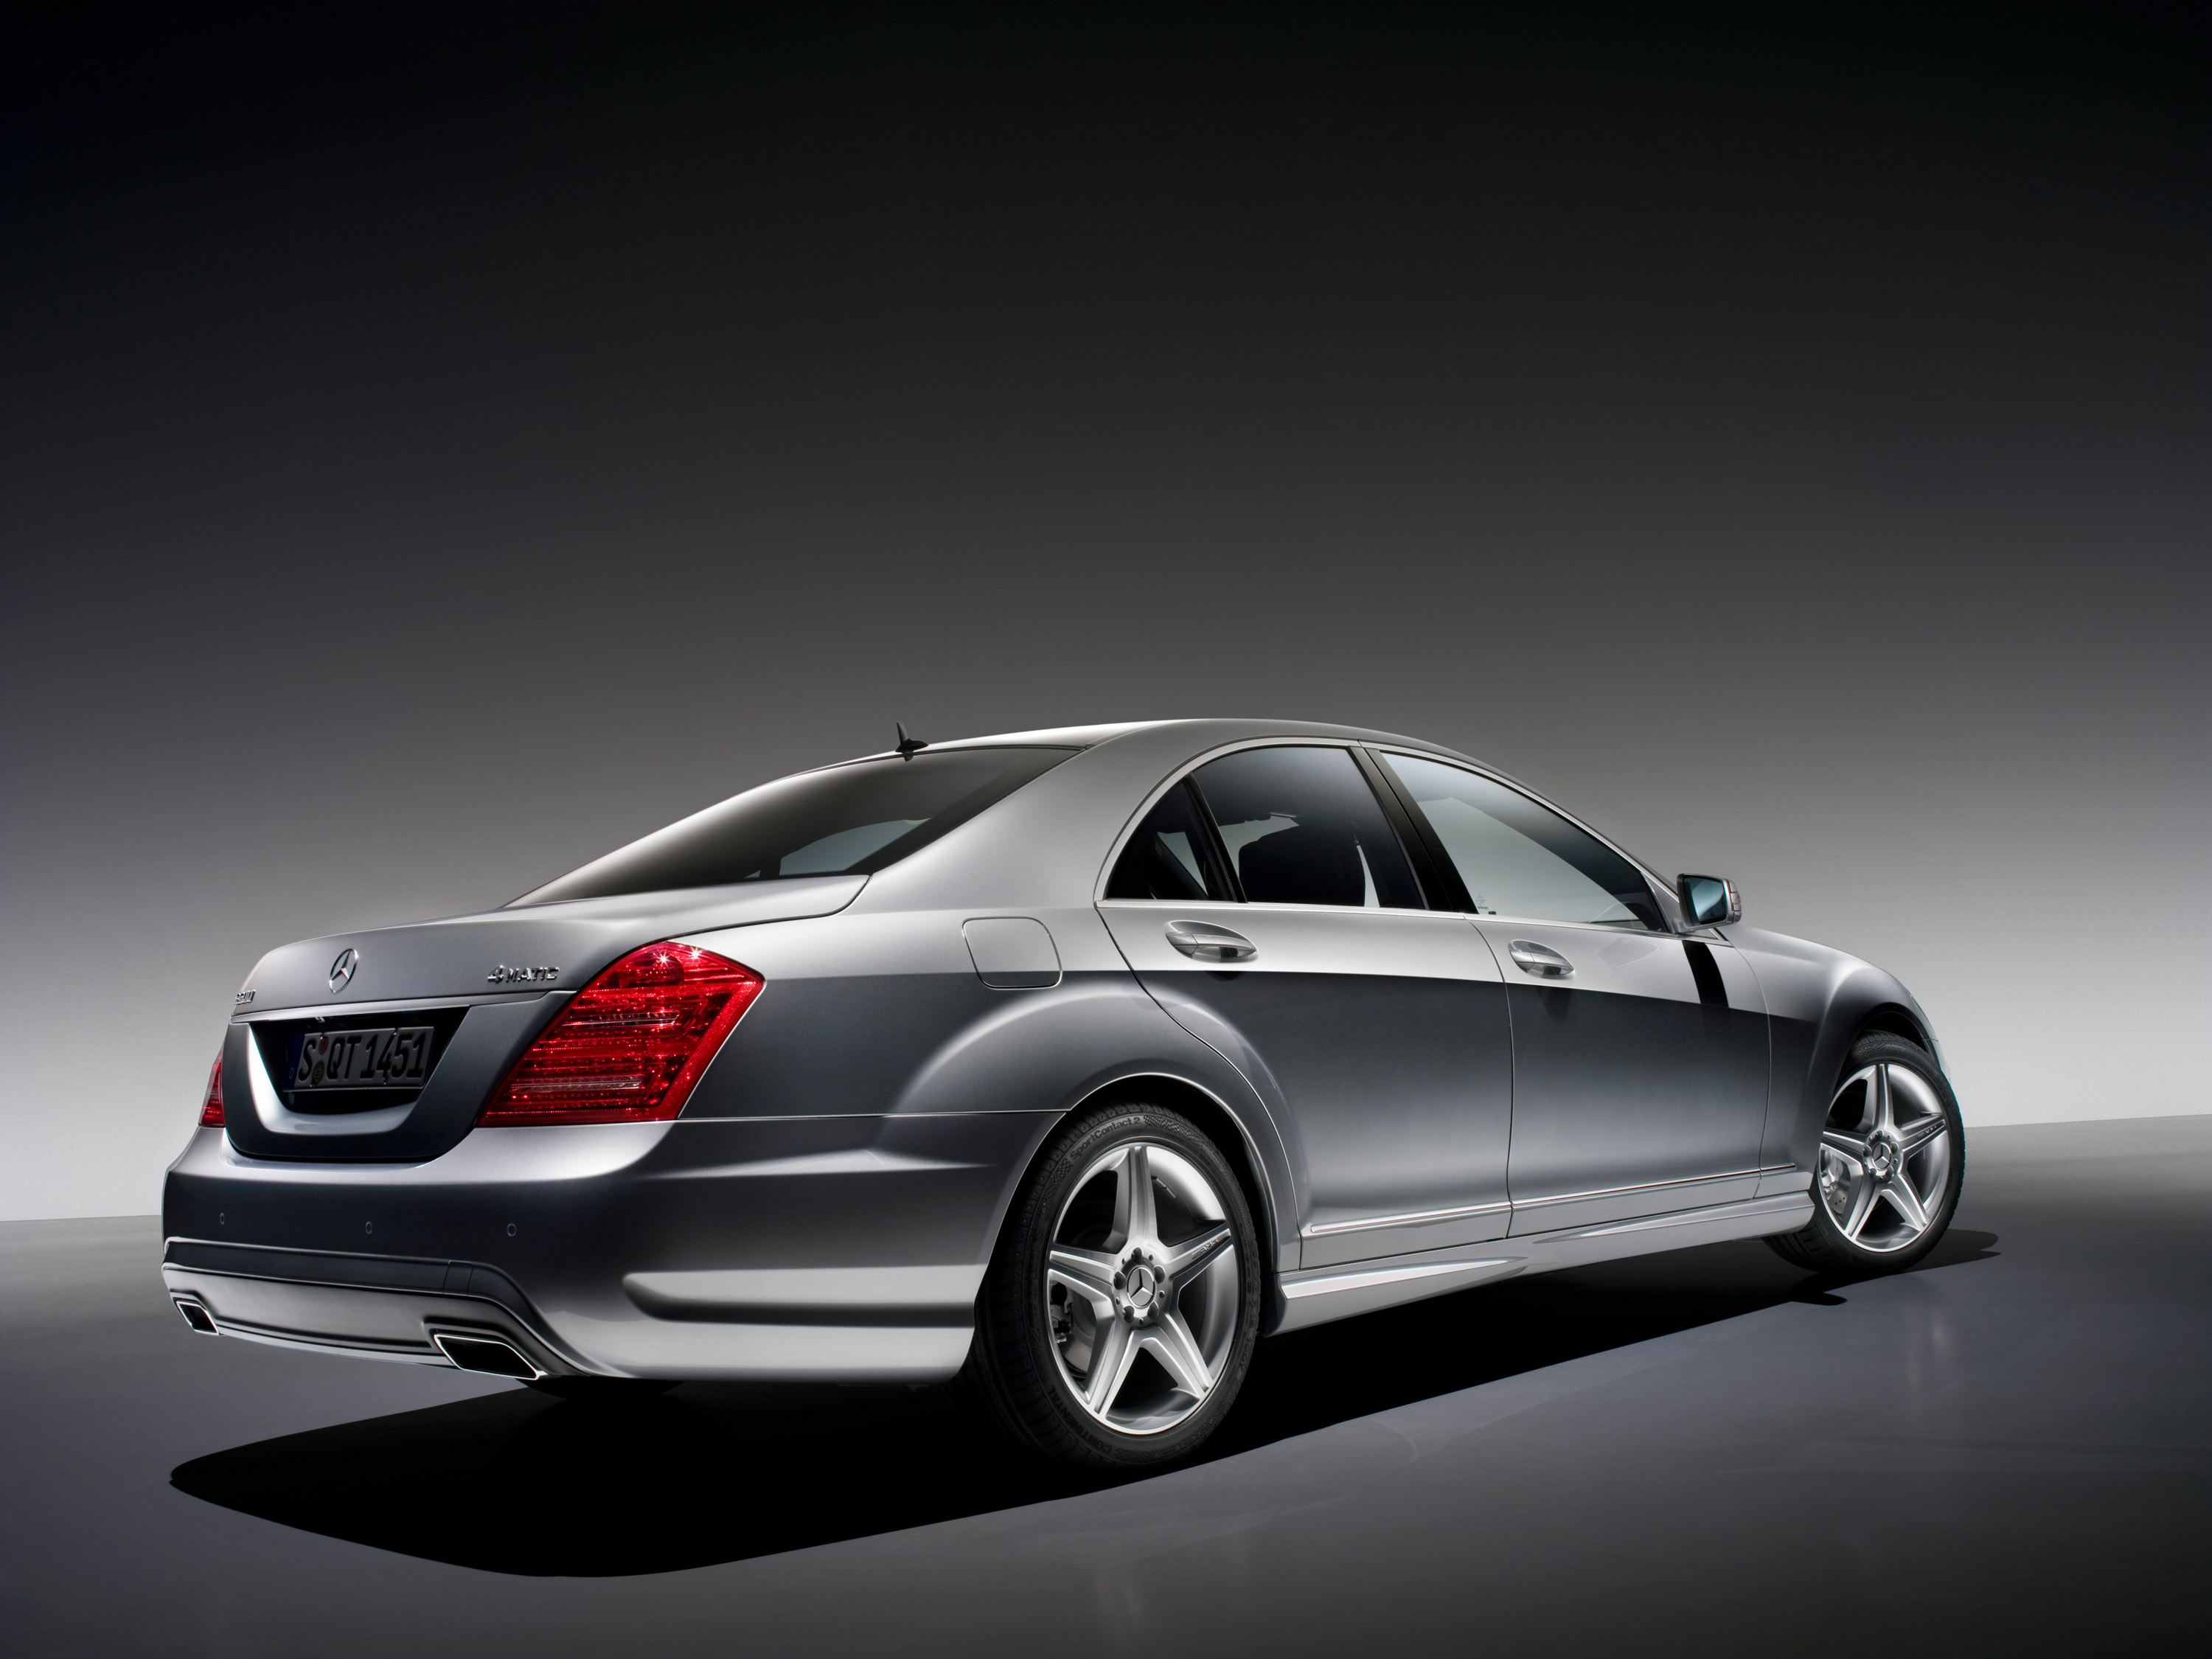 2009 Mercedes Benz S 500 4matic Amg Picture 19325